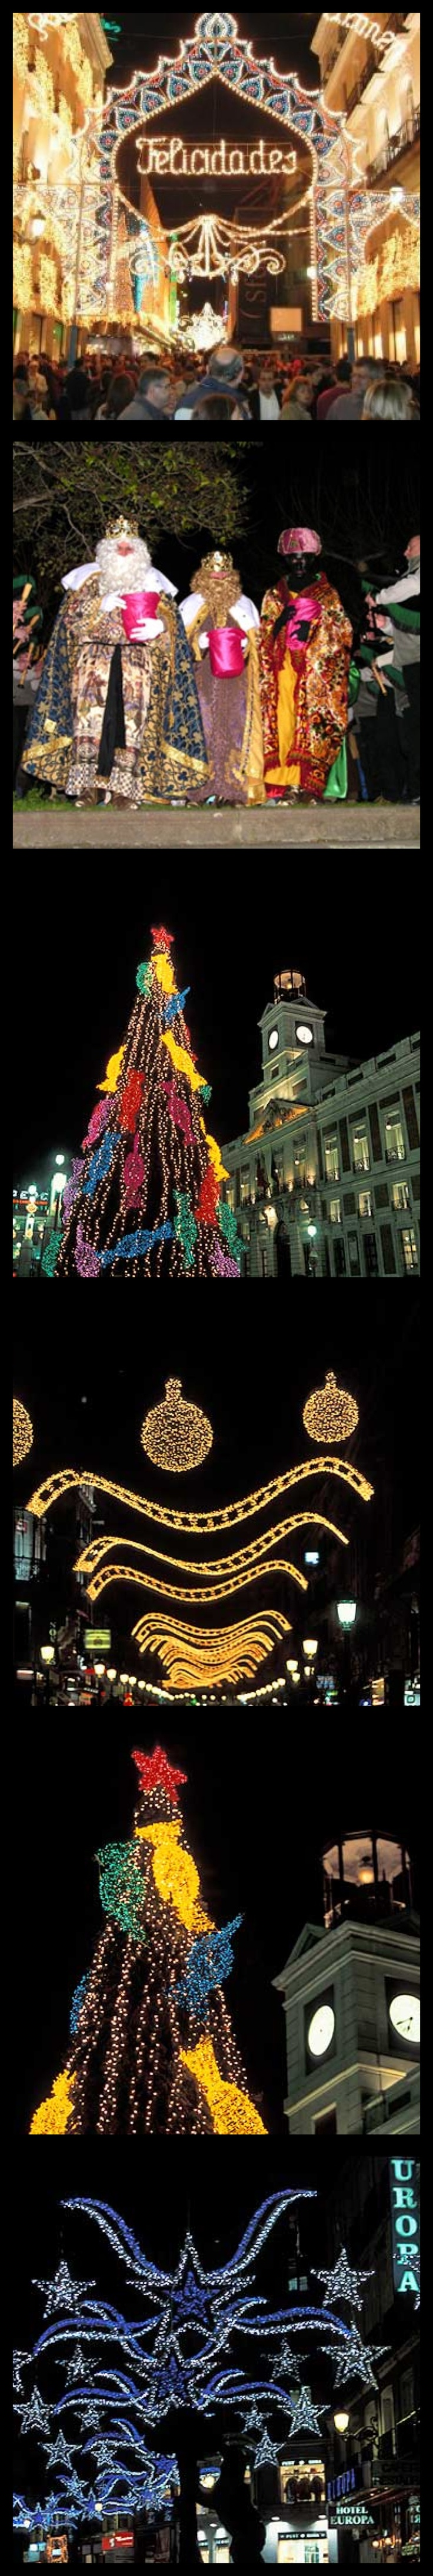 Christmas Traditions: Christmas in Spain.  The fourth image reminds me of Christmastime in Granada!